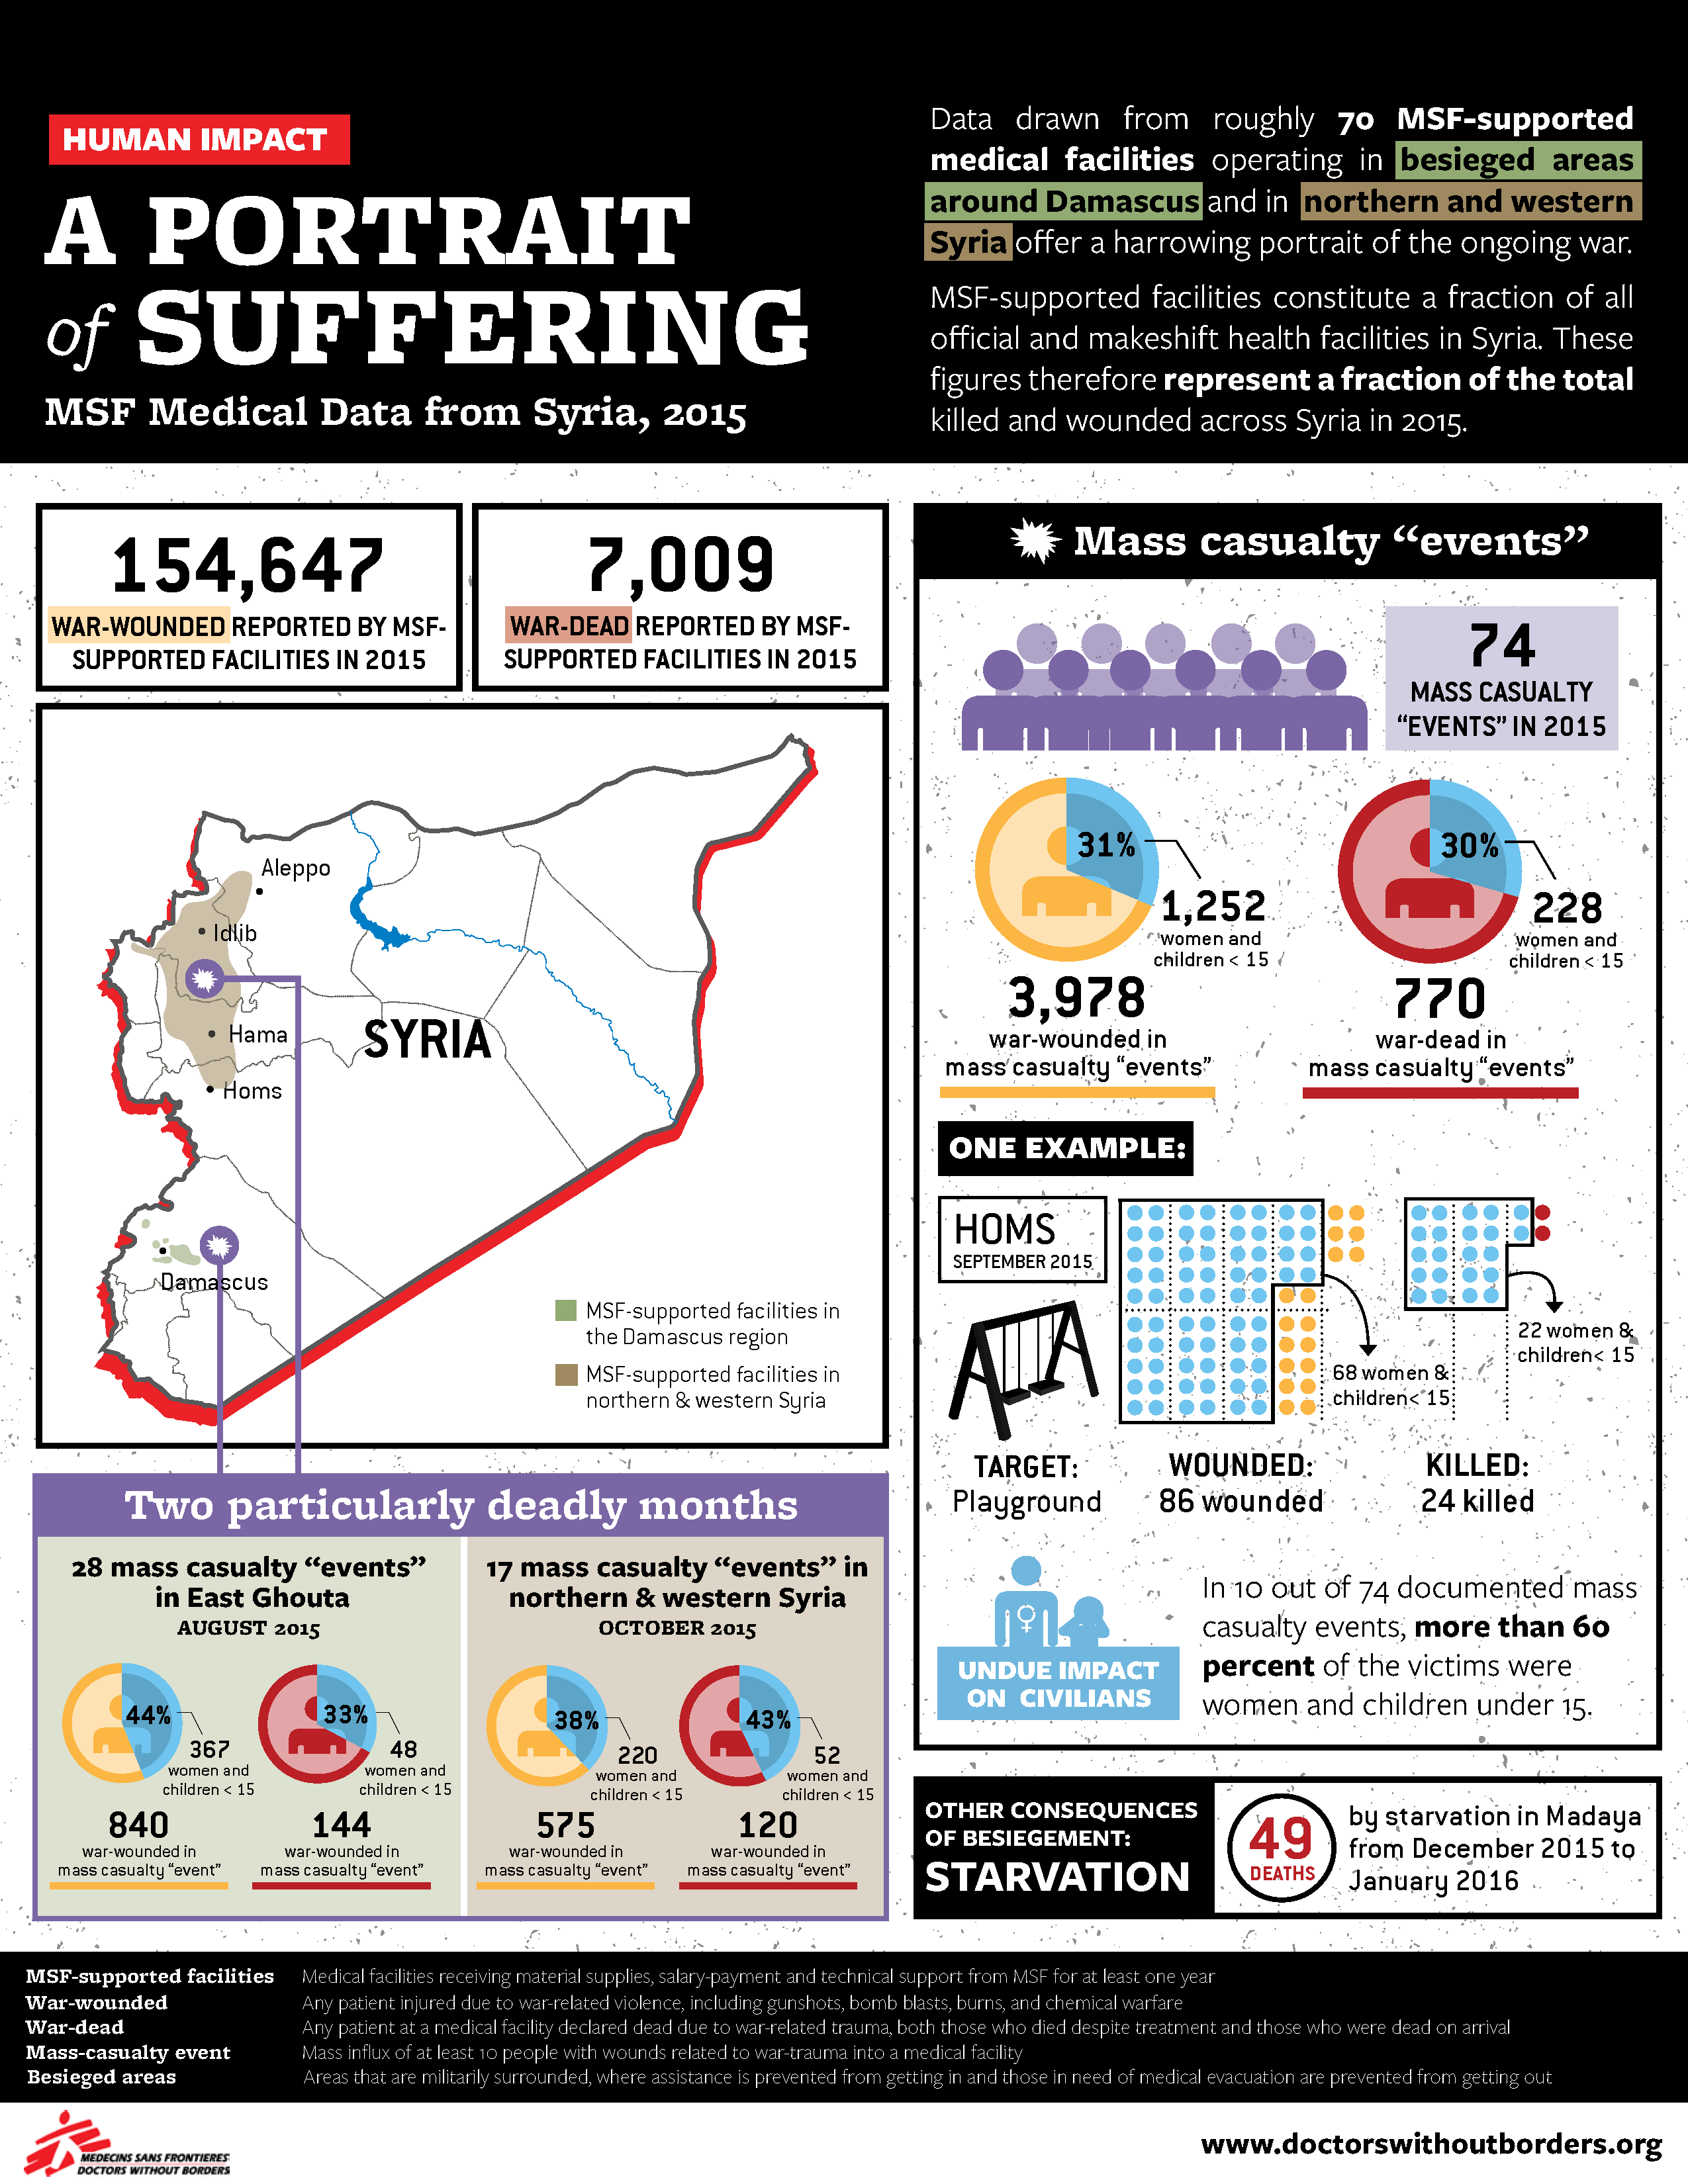 Syria: A Portrait of Suffering